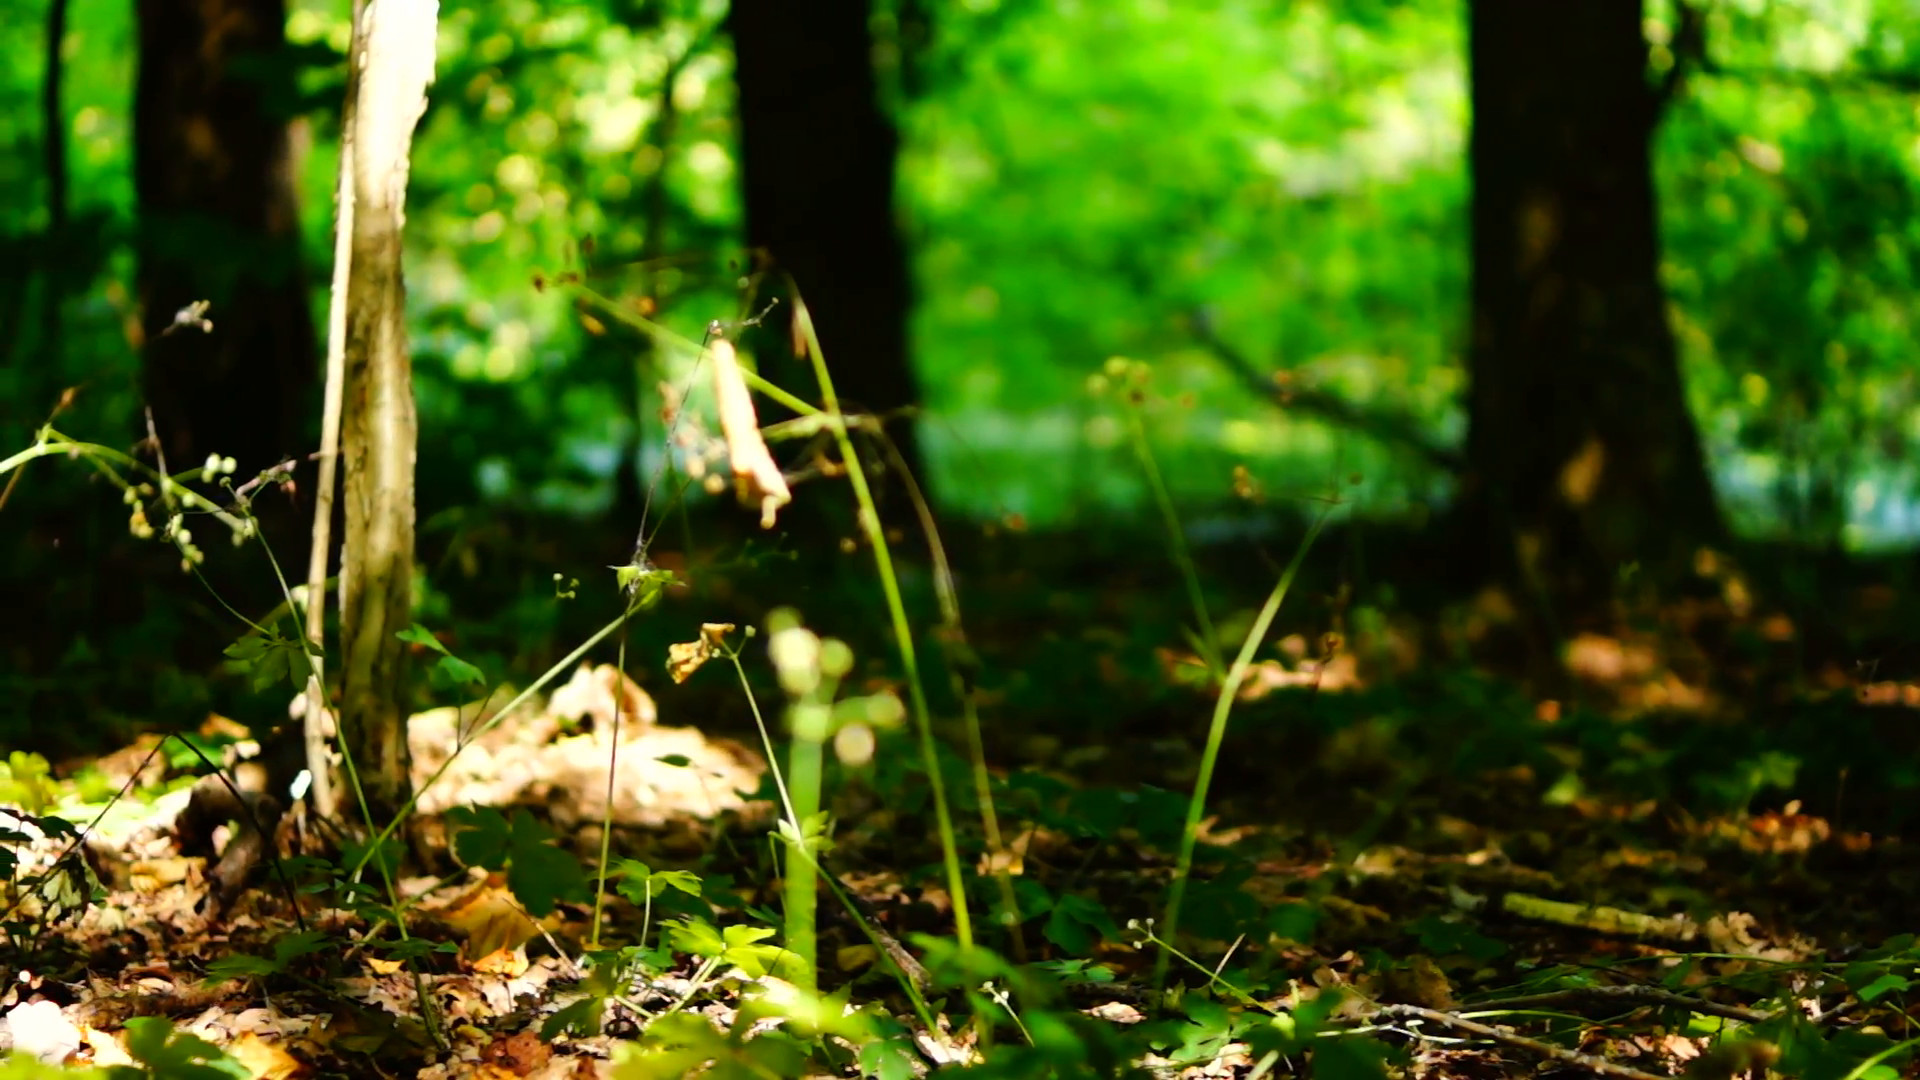 Subscription Library Woods forest, trees background, green nature  landscape, ground, august, pan